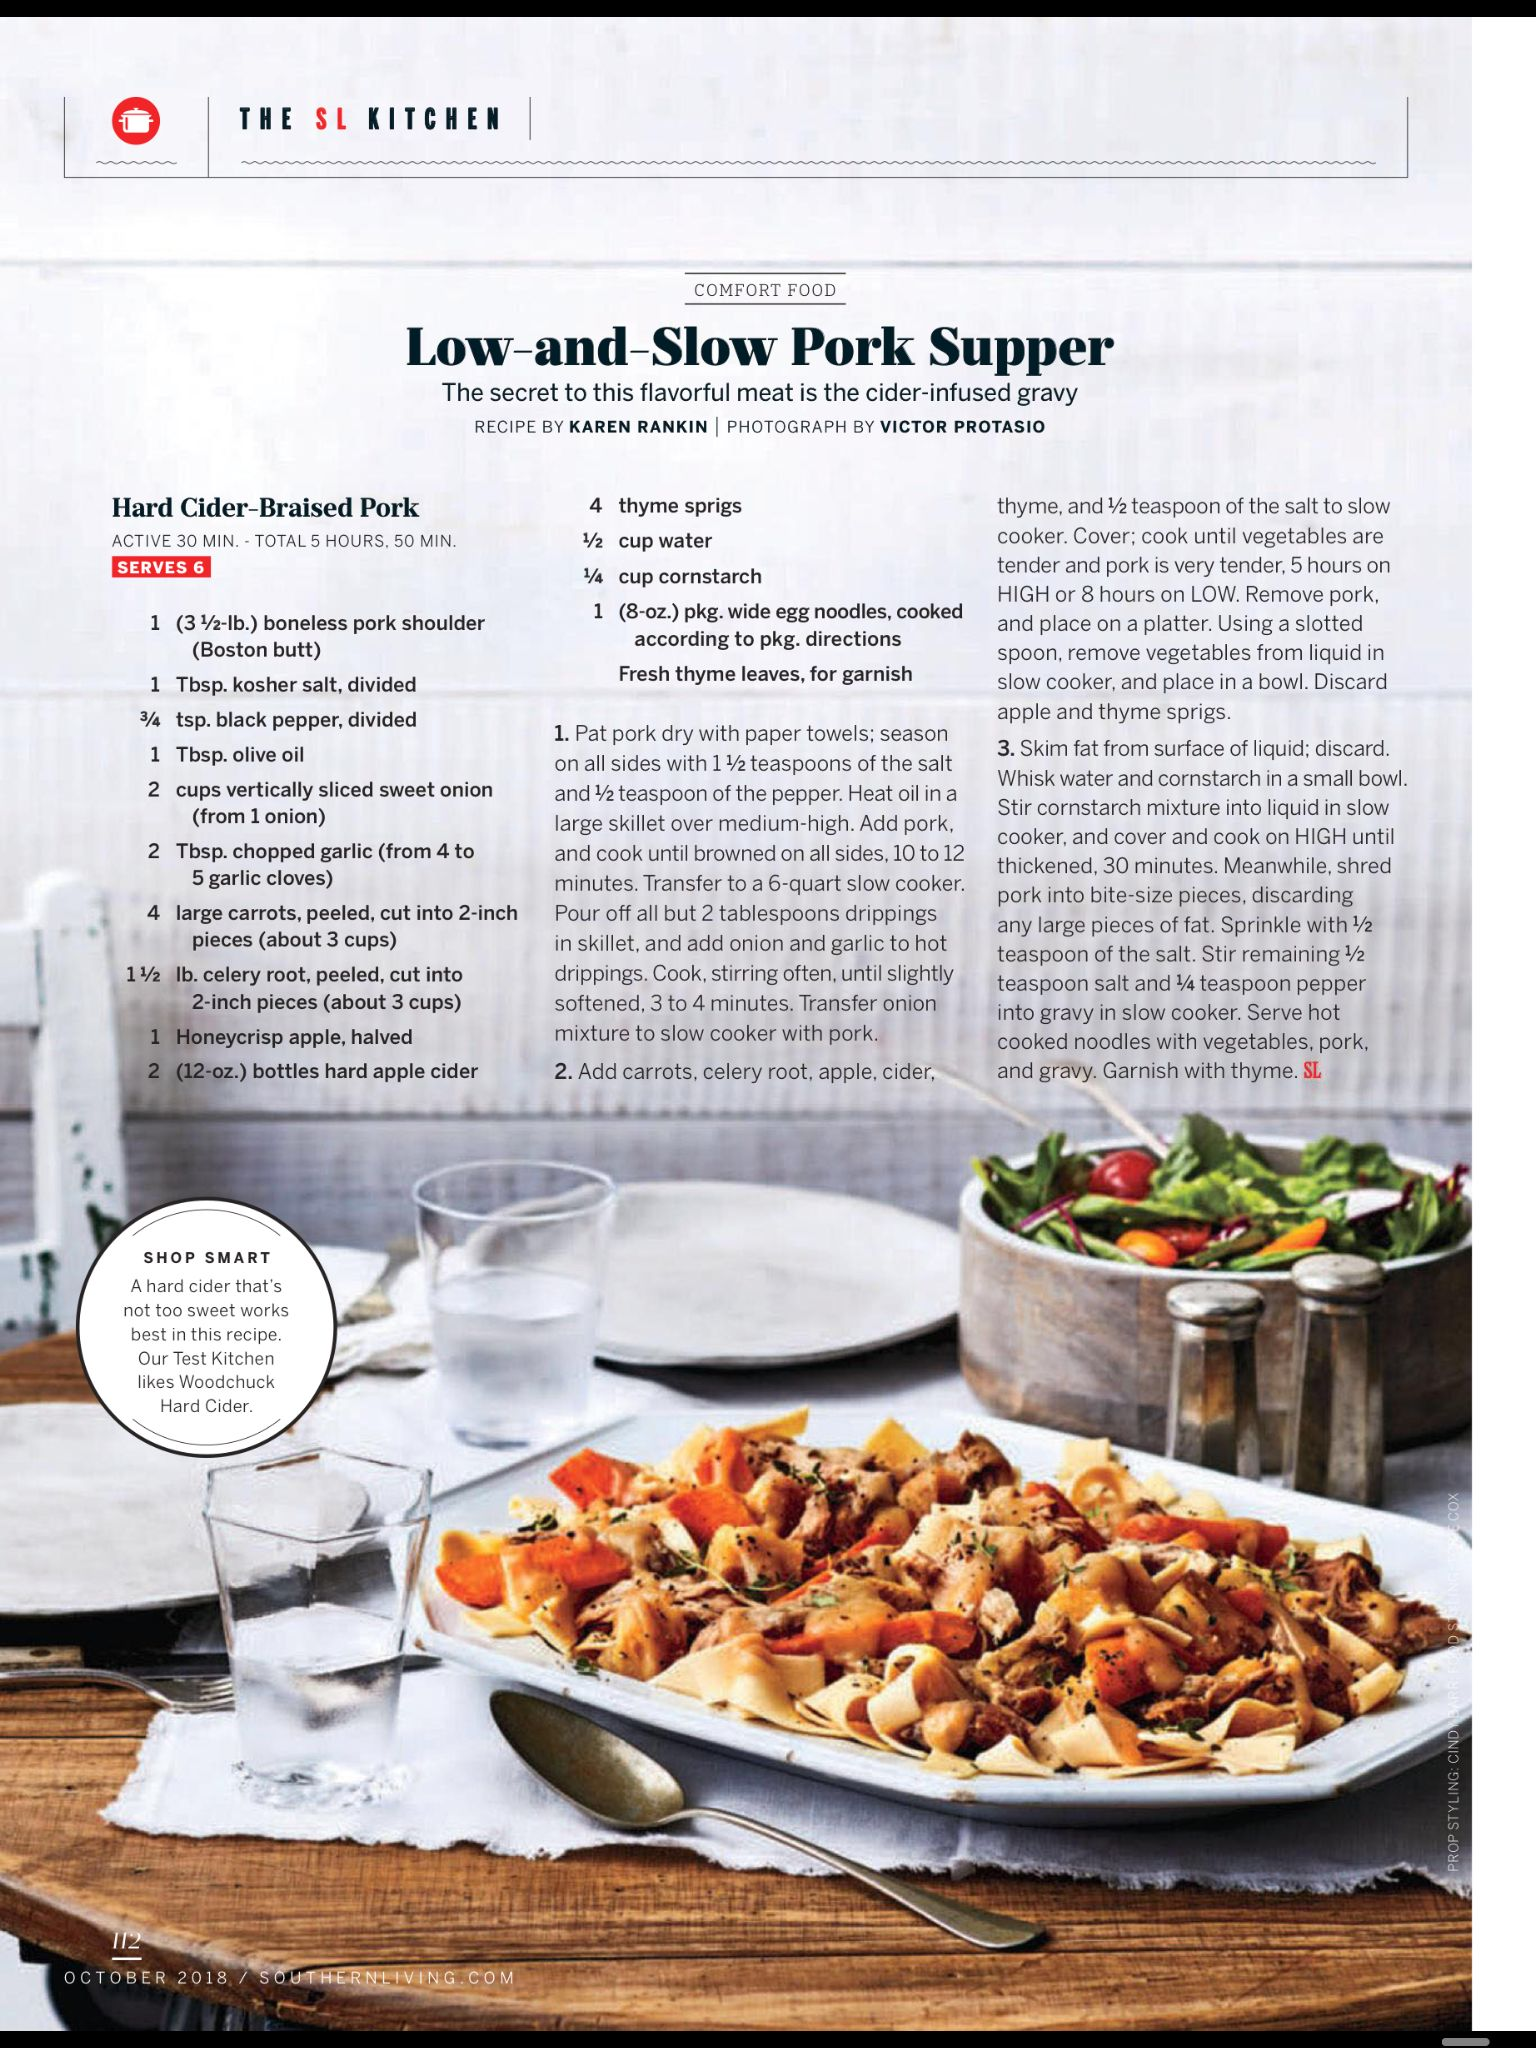 Low-and-Slow Pork Supper